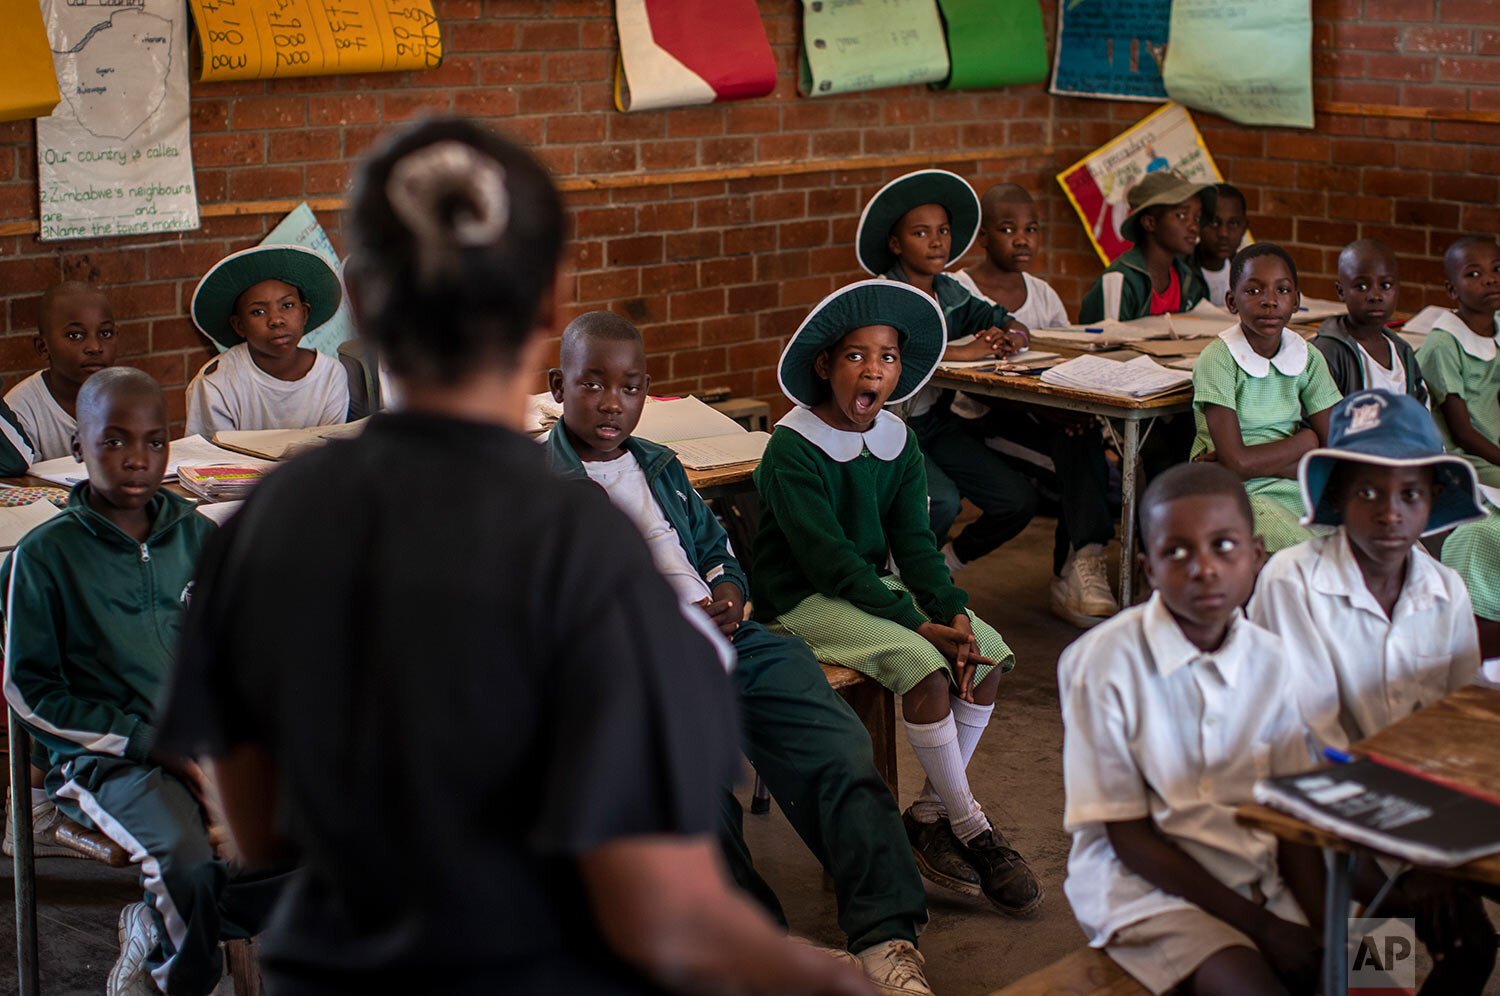 Schoolchildren attend a class in the Shona language on the first day of term at the Vimbai Primary School in Norton, west of the capital Harare, in Zimbabwe, Sept. 10, 2019. (AP Photo/Ben Curtis)